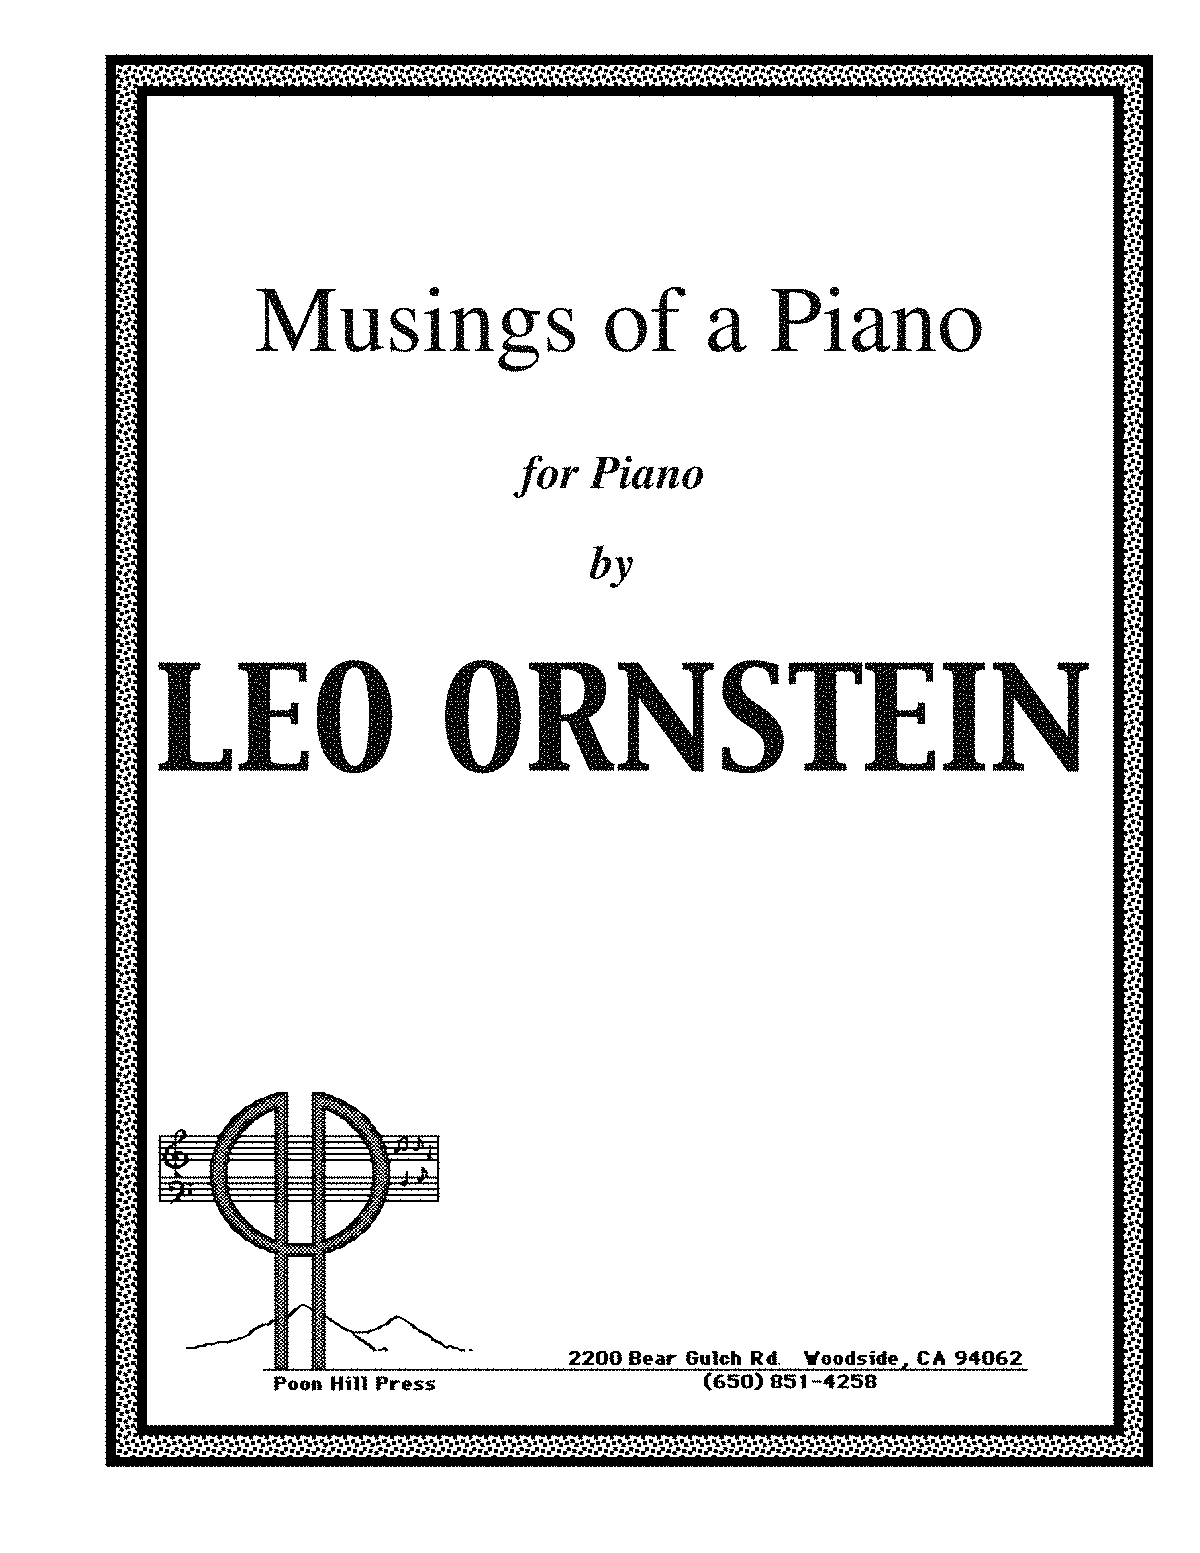 S065 - Musings of a Piano.pdf